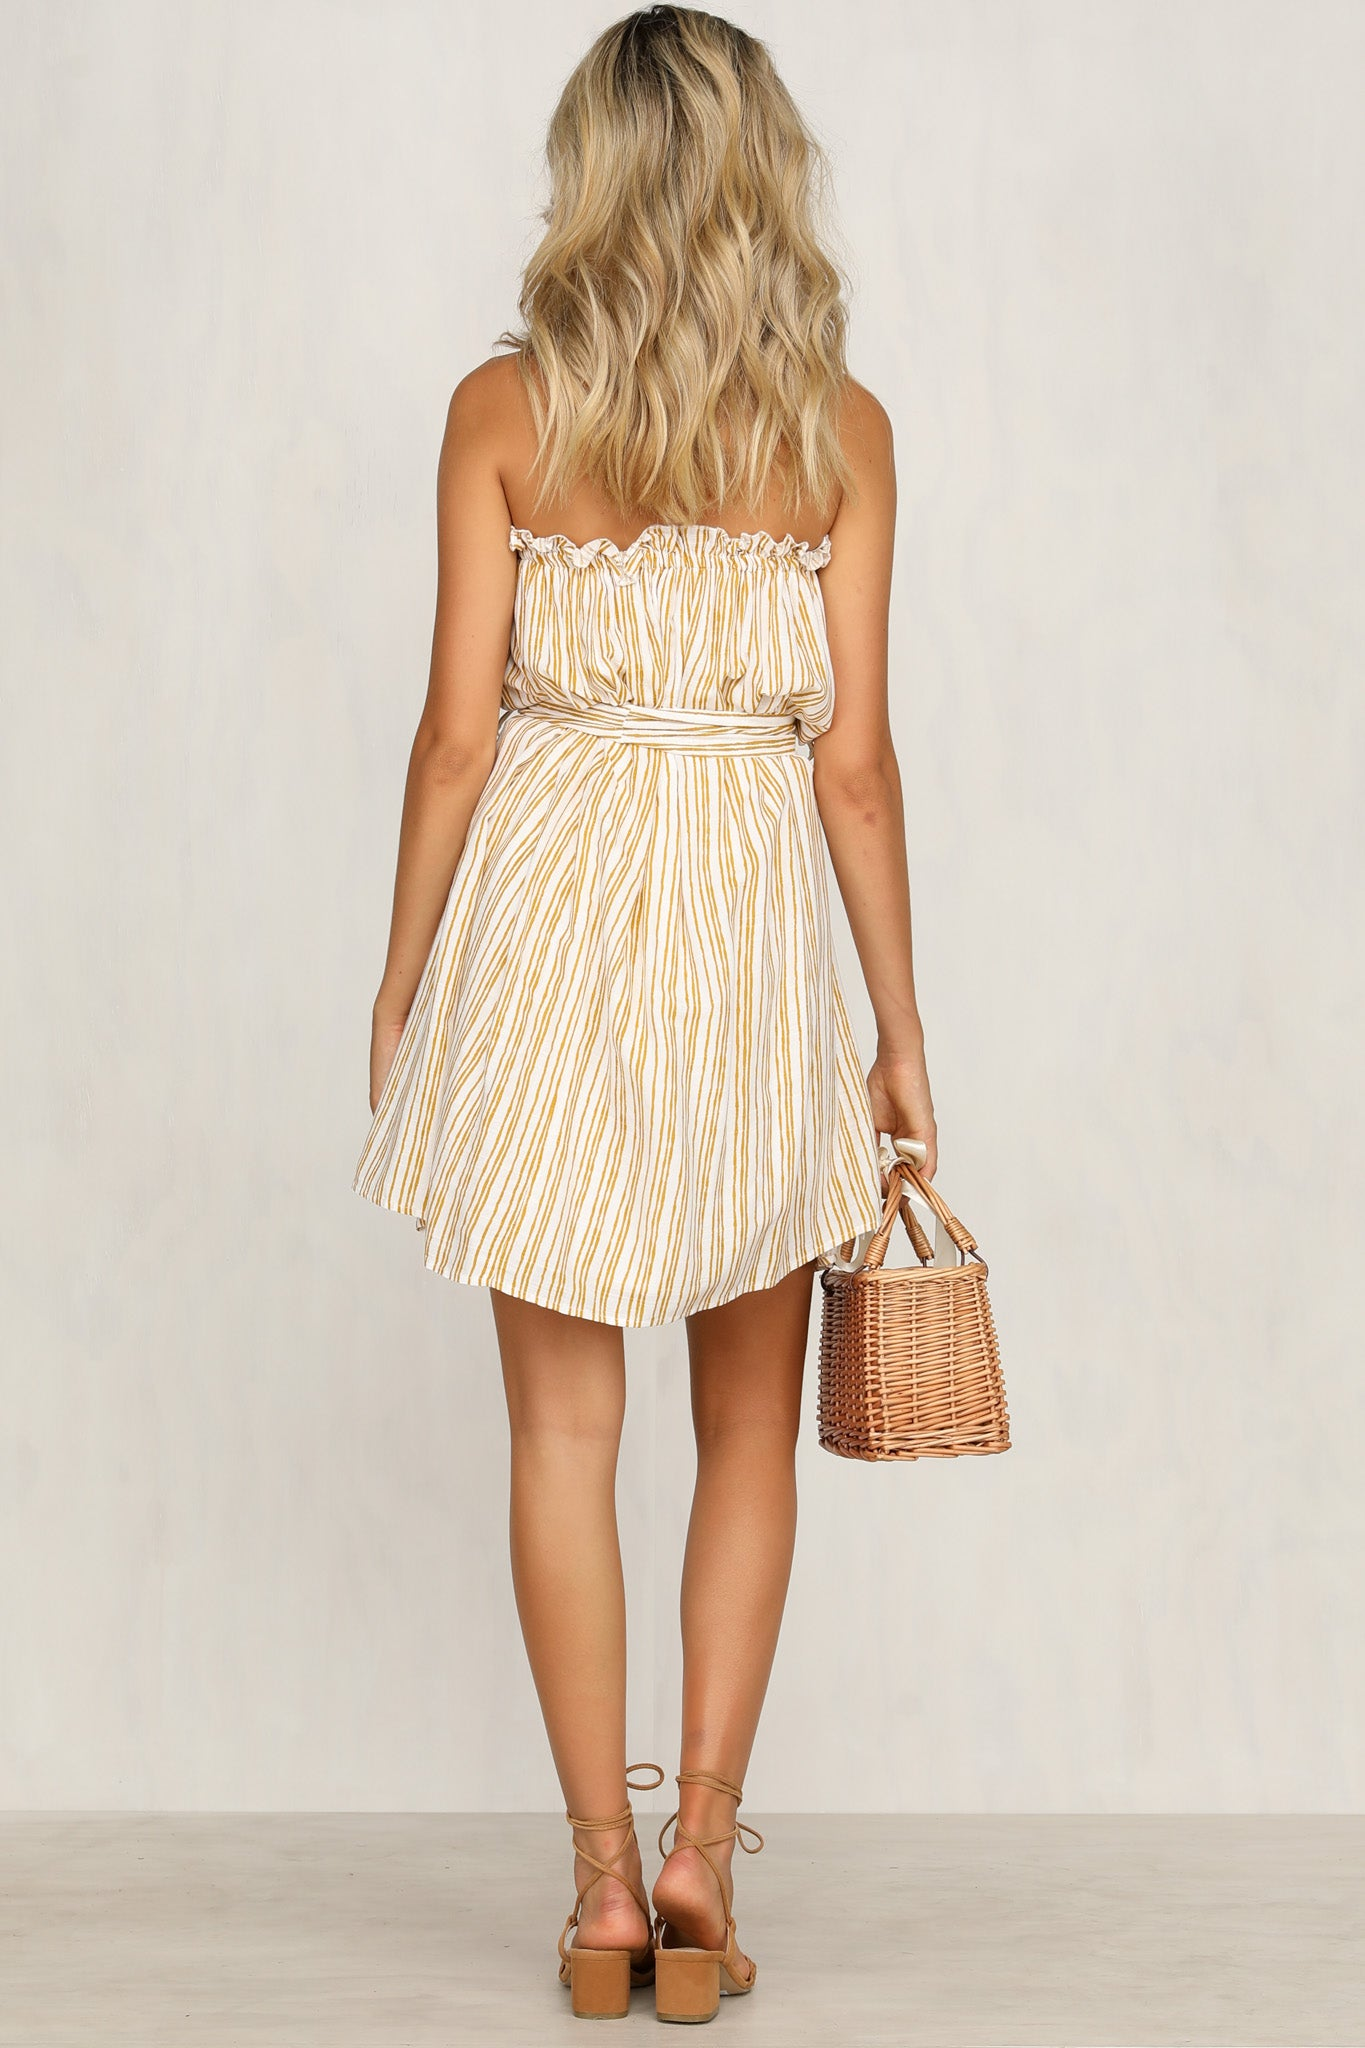 Take My Hand Dress (Stripe)